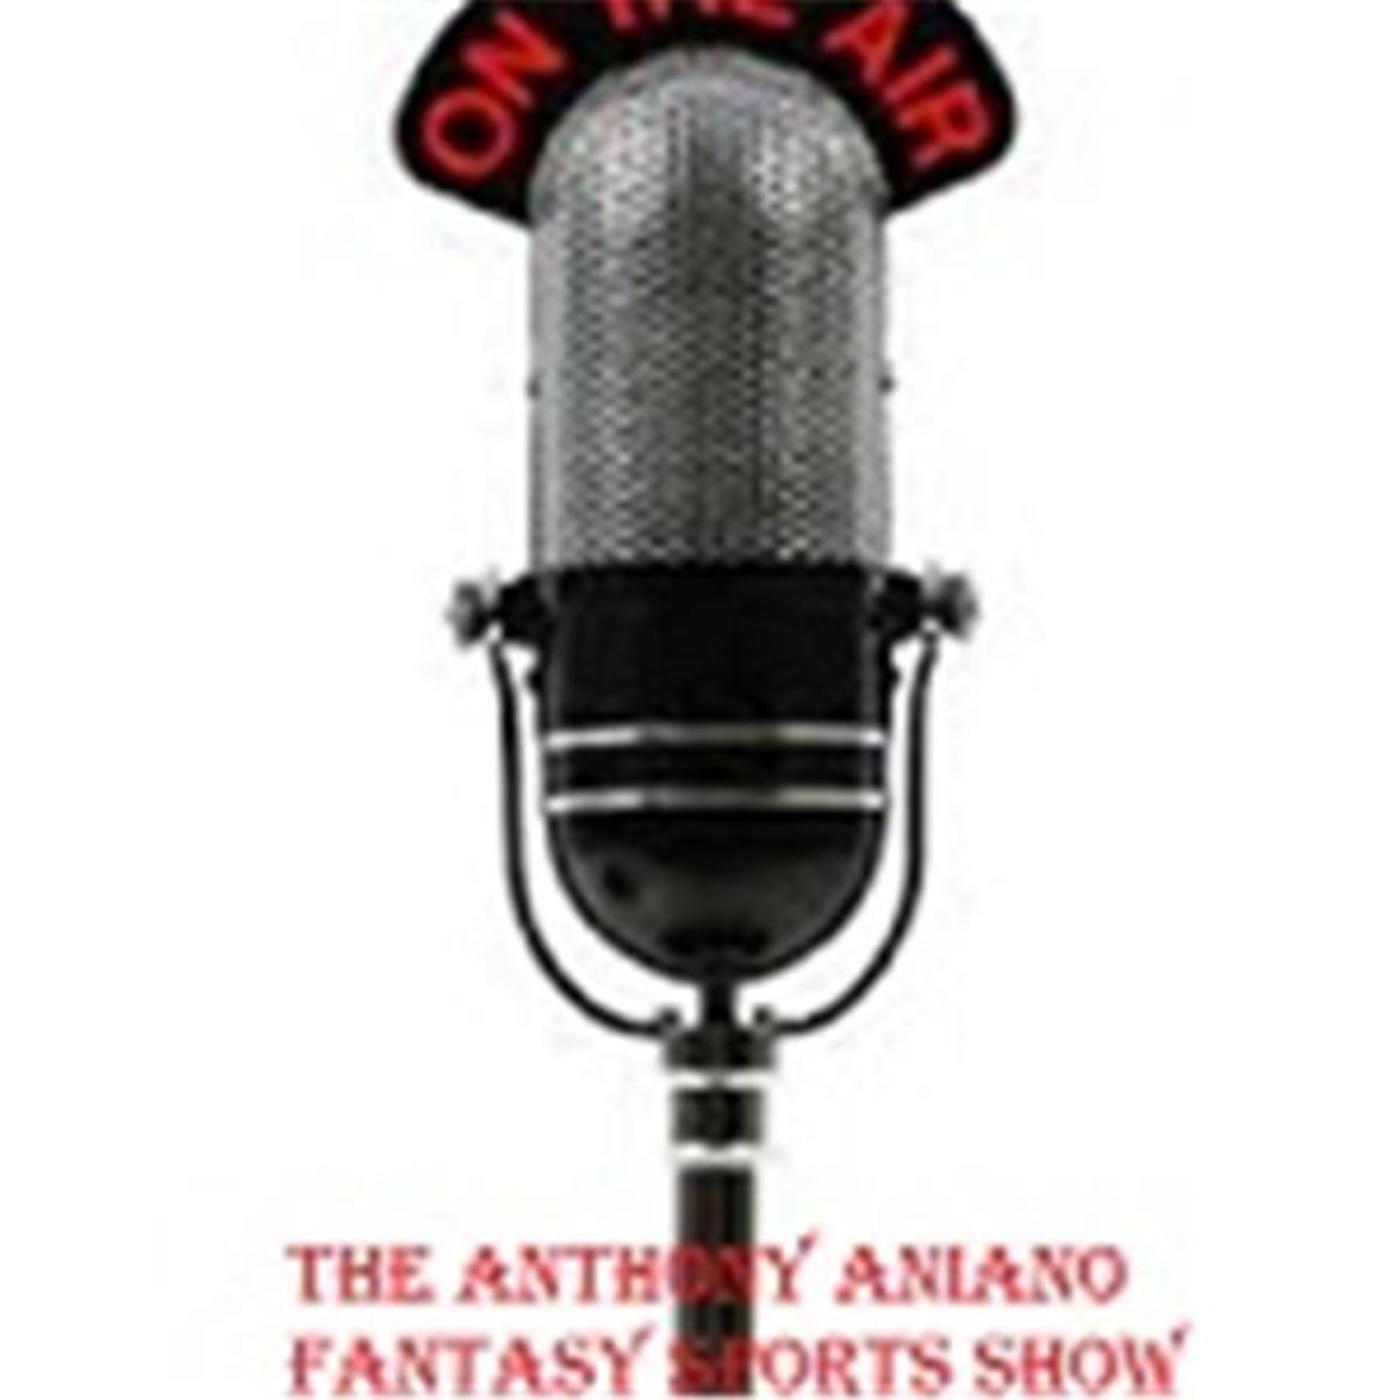 The Anthony Aniano Fantasy Sports Show